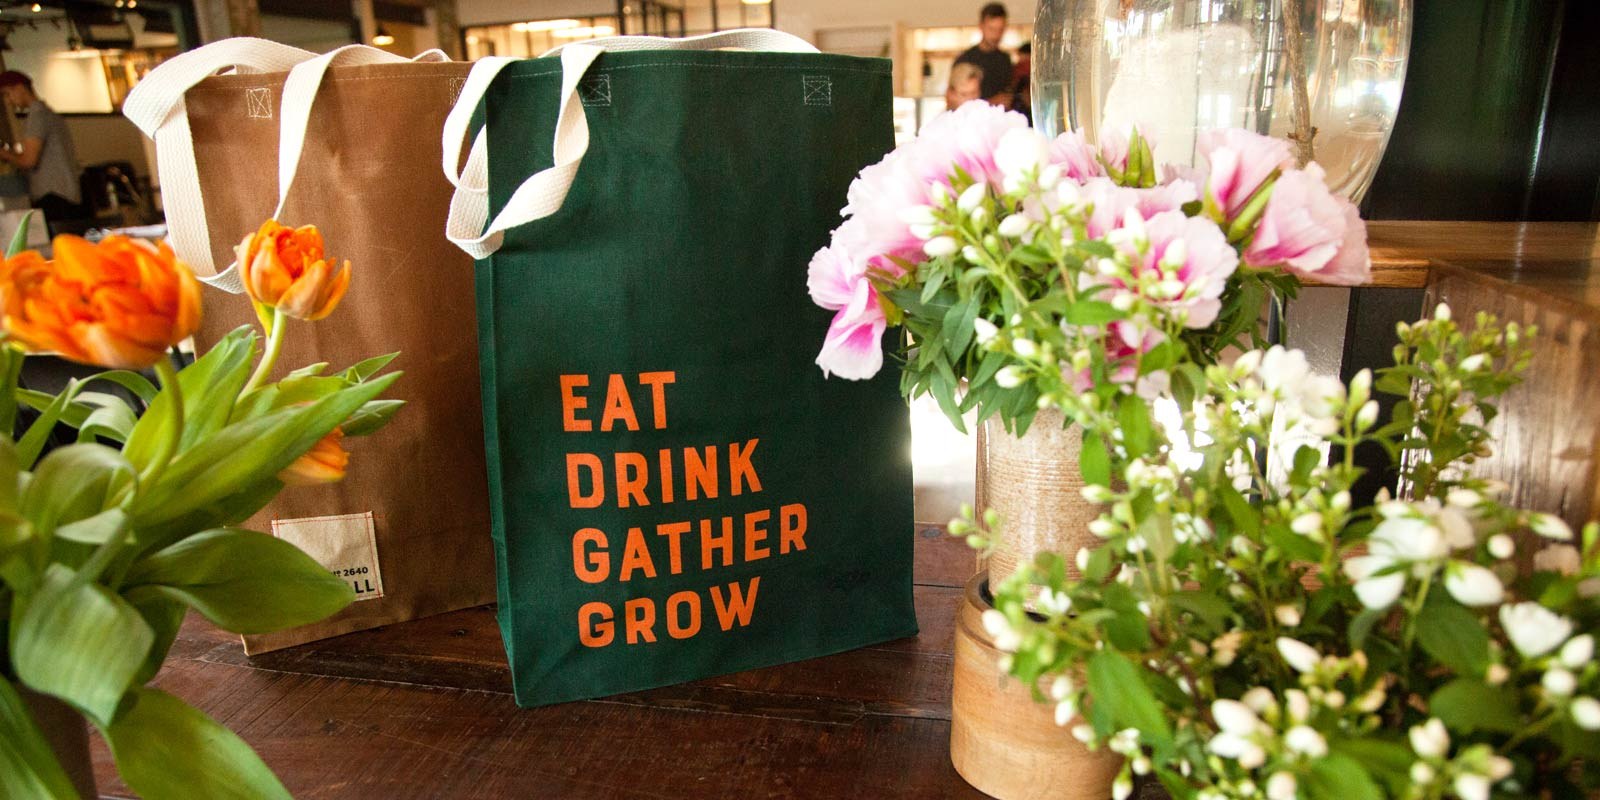 lynhall bags flowers eat drink gather grow